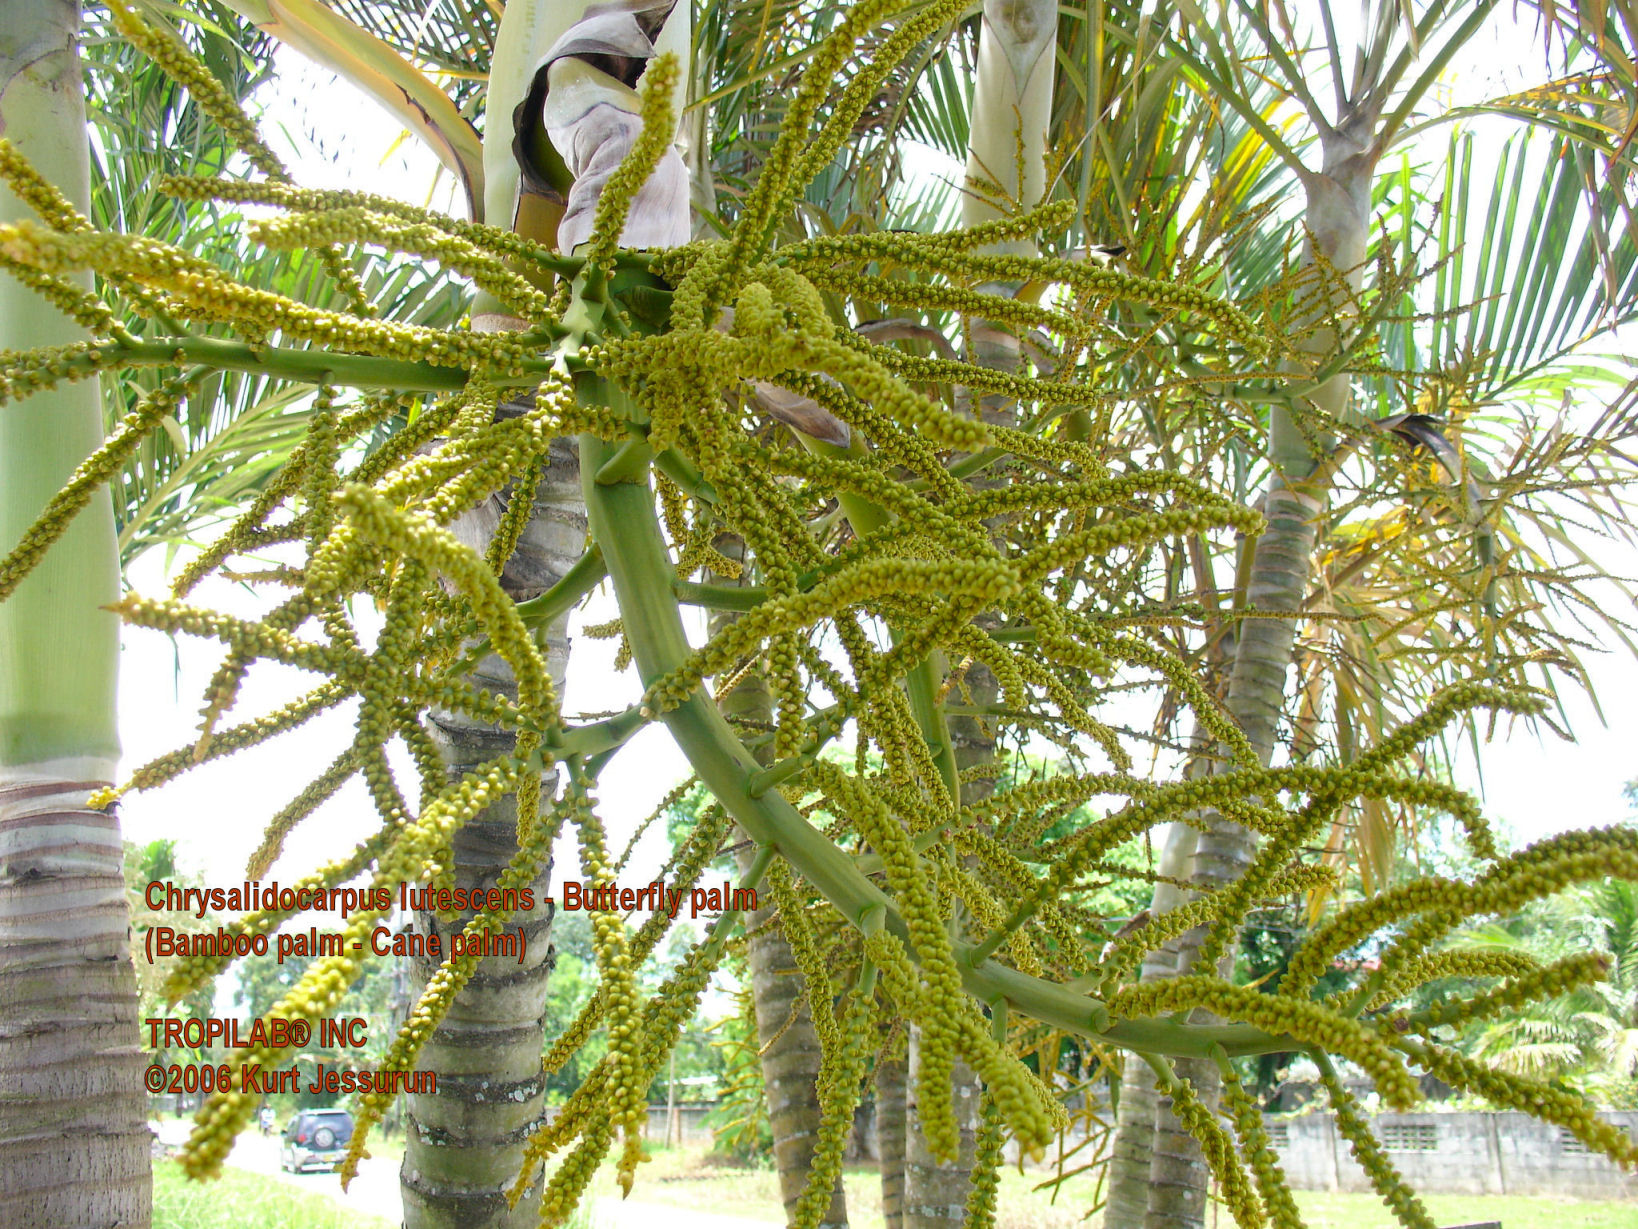 Chrysalidocarpus lutescens - Butterfly palm